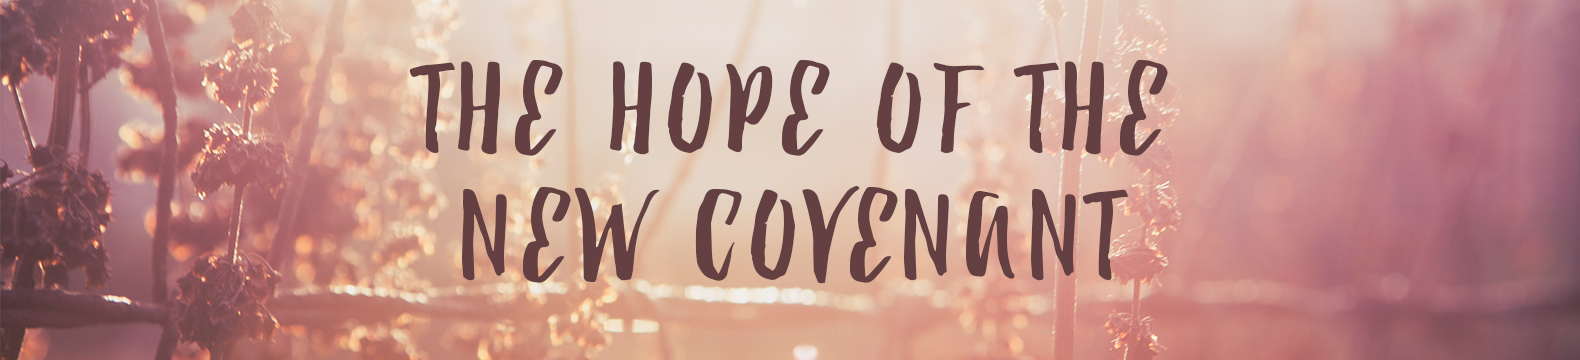 Community Group Guides: The Hope of the New Covenant